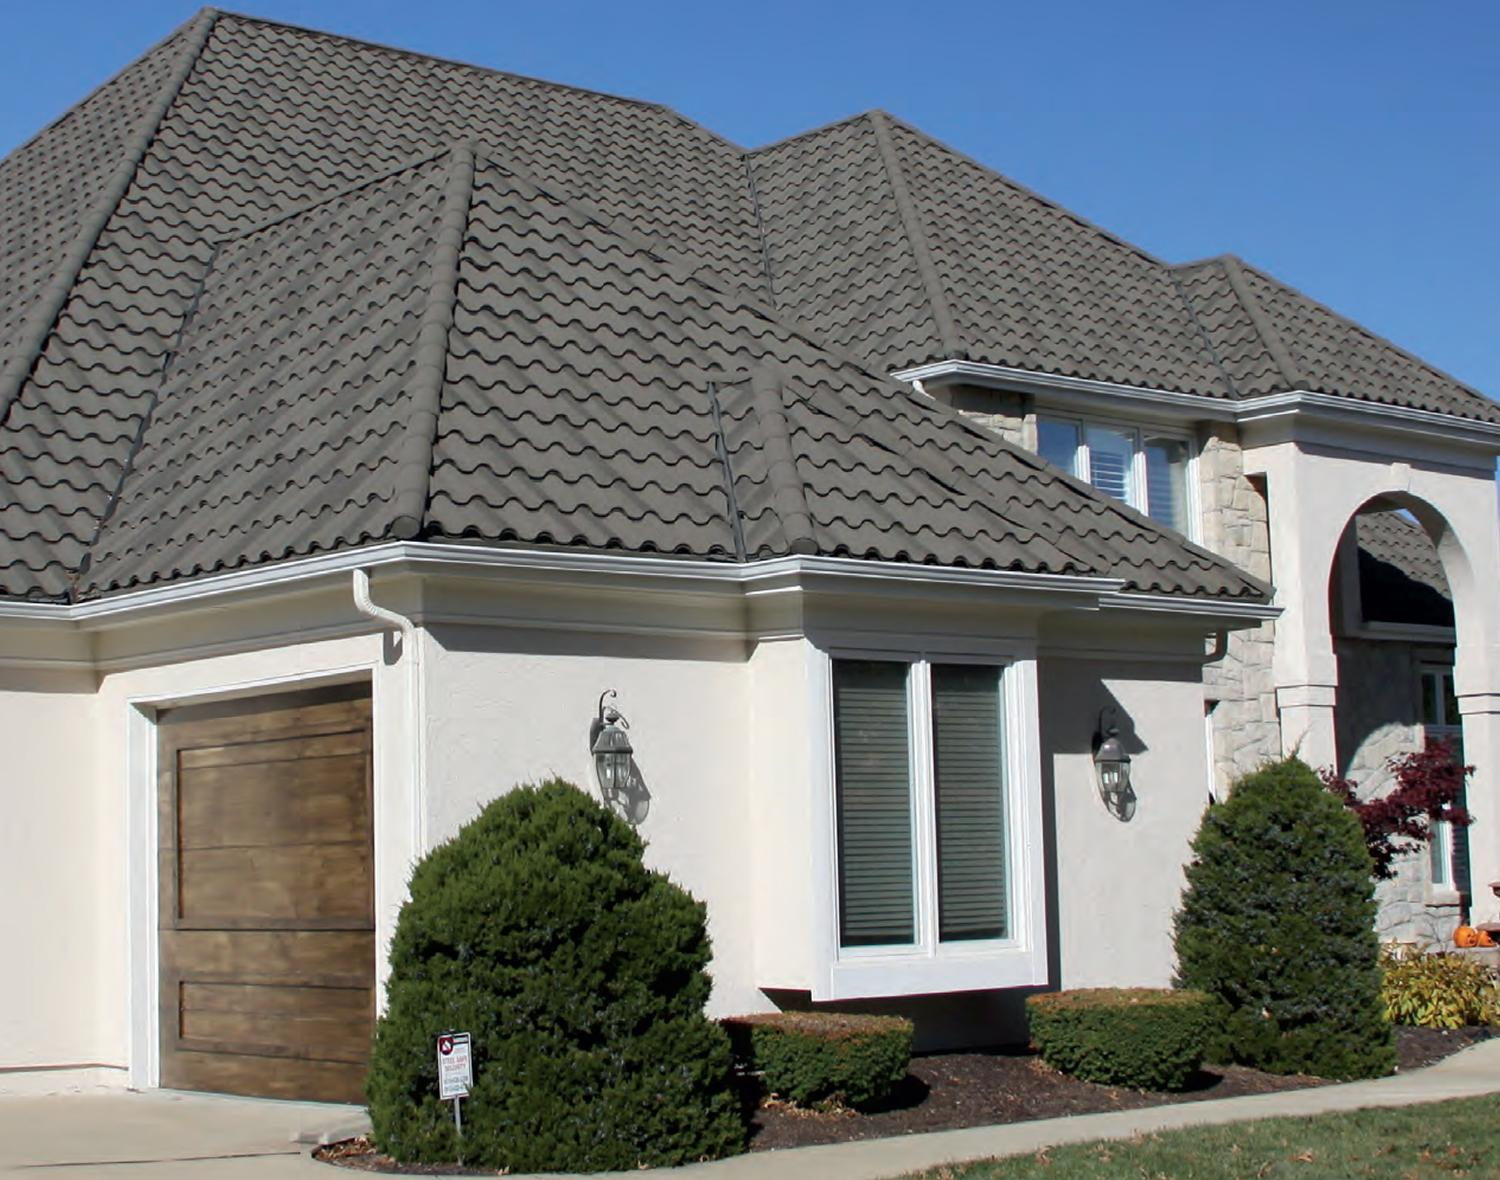 DECRA Roofs Handle the Harshest Weather Conditions - Image 1